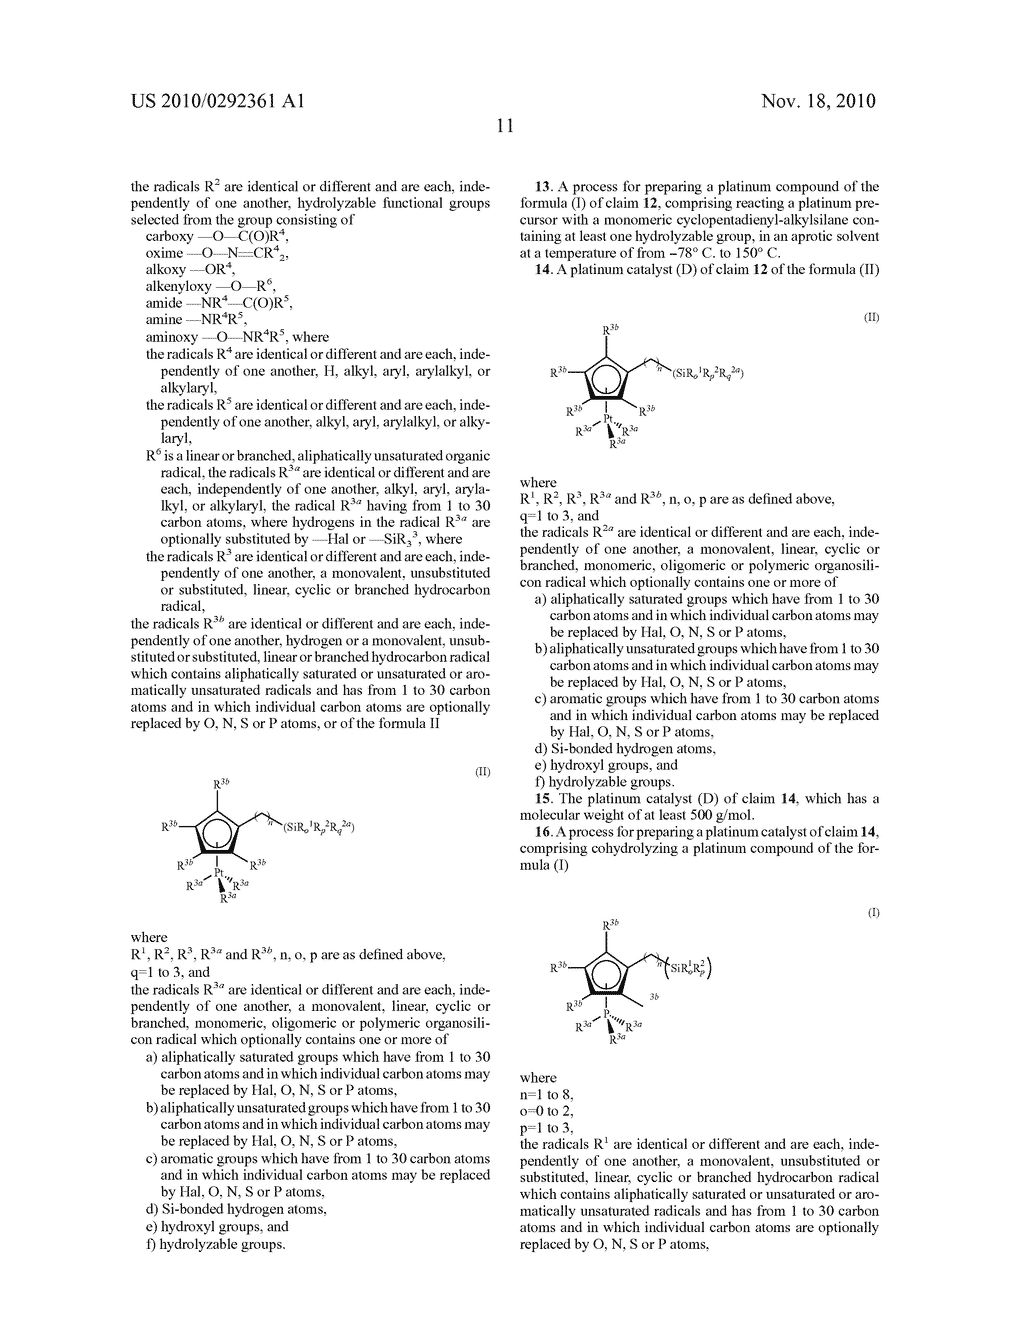 HYDROSILYLATION REACTIONS ACTIVATED THROUGH RADIATION - diagram, schematic, and image 12